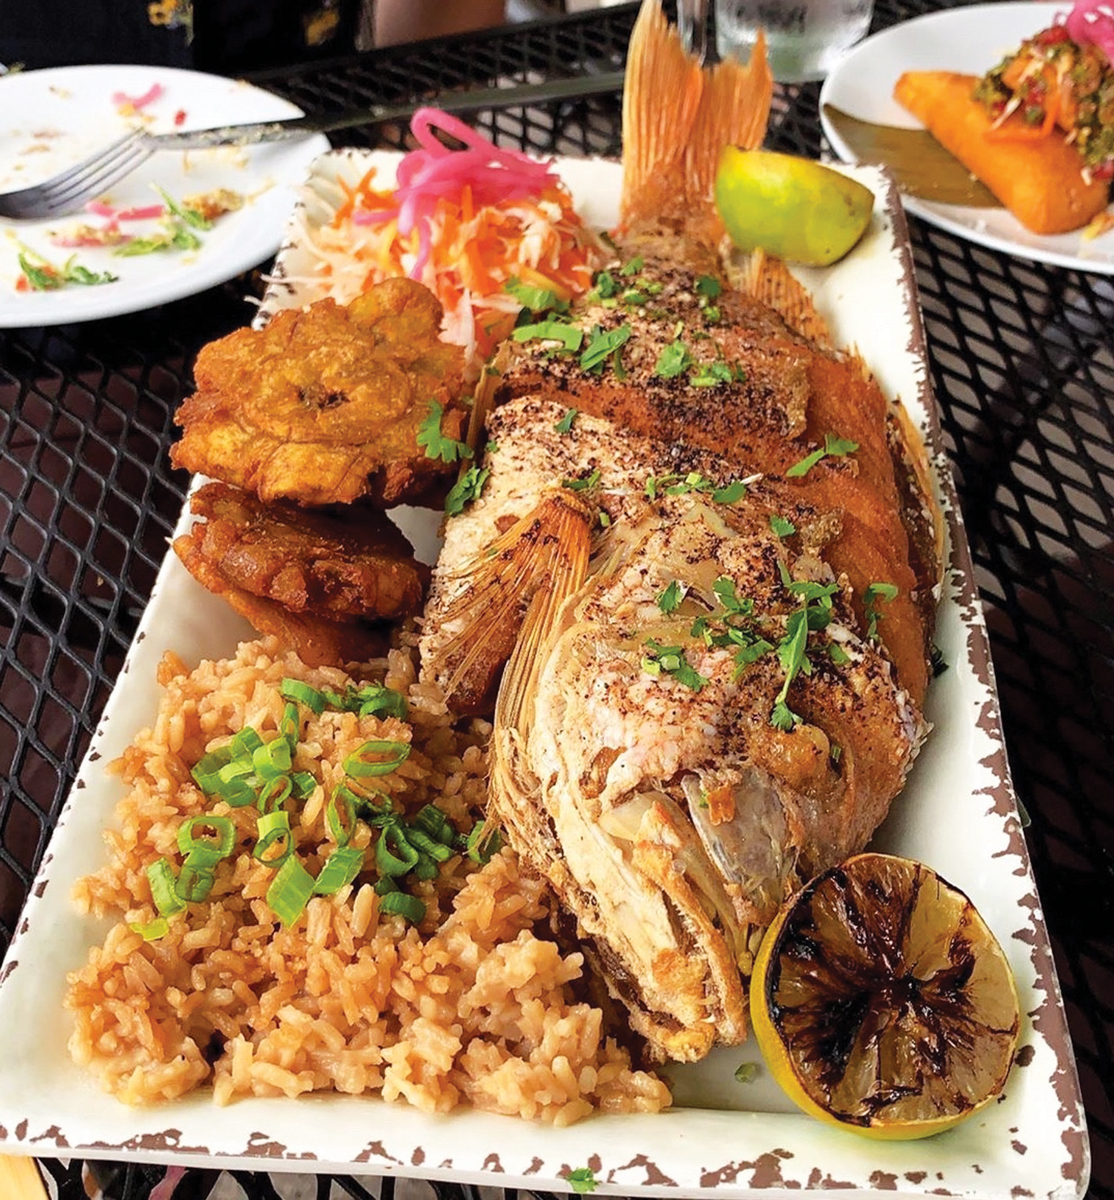 Love Affair: Why Caribbean food works in New Orleans